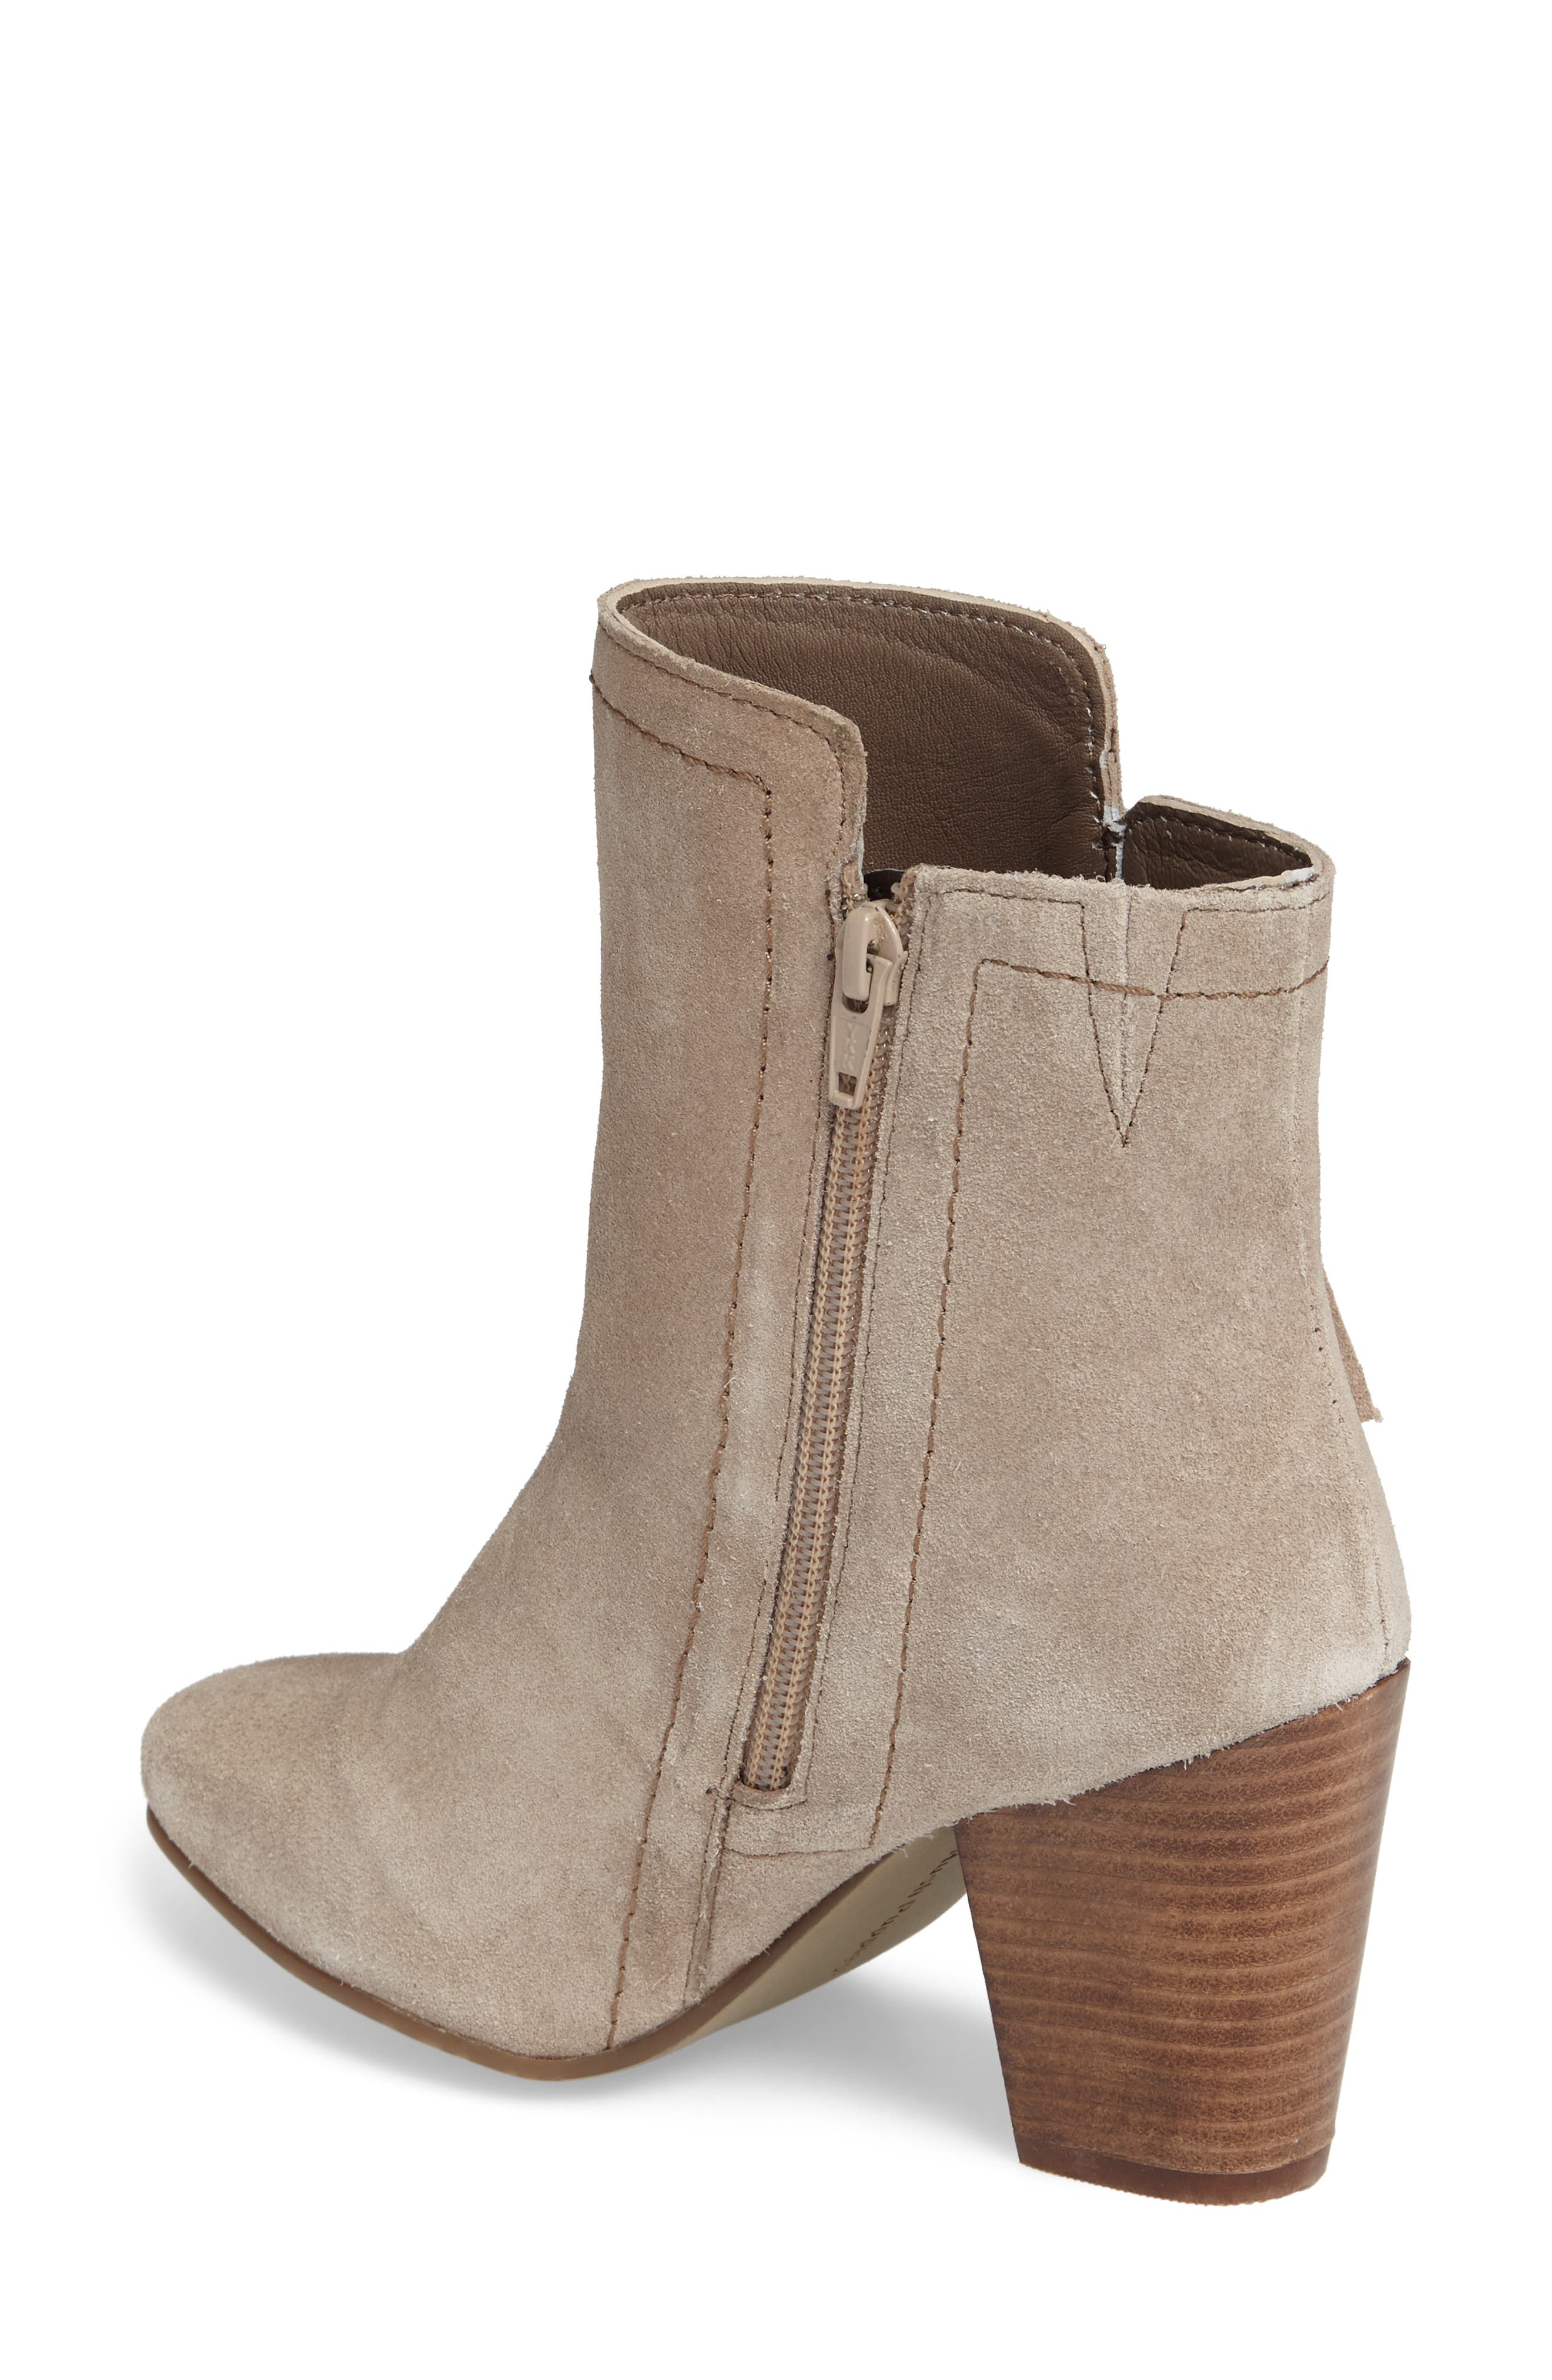 Daisee Billie Bootie,                             Alternate thumbnail 2, color,                             Taupe Suede